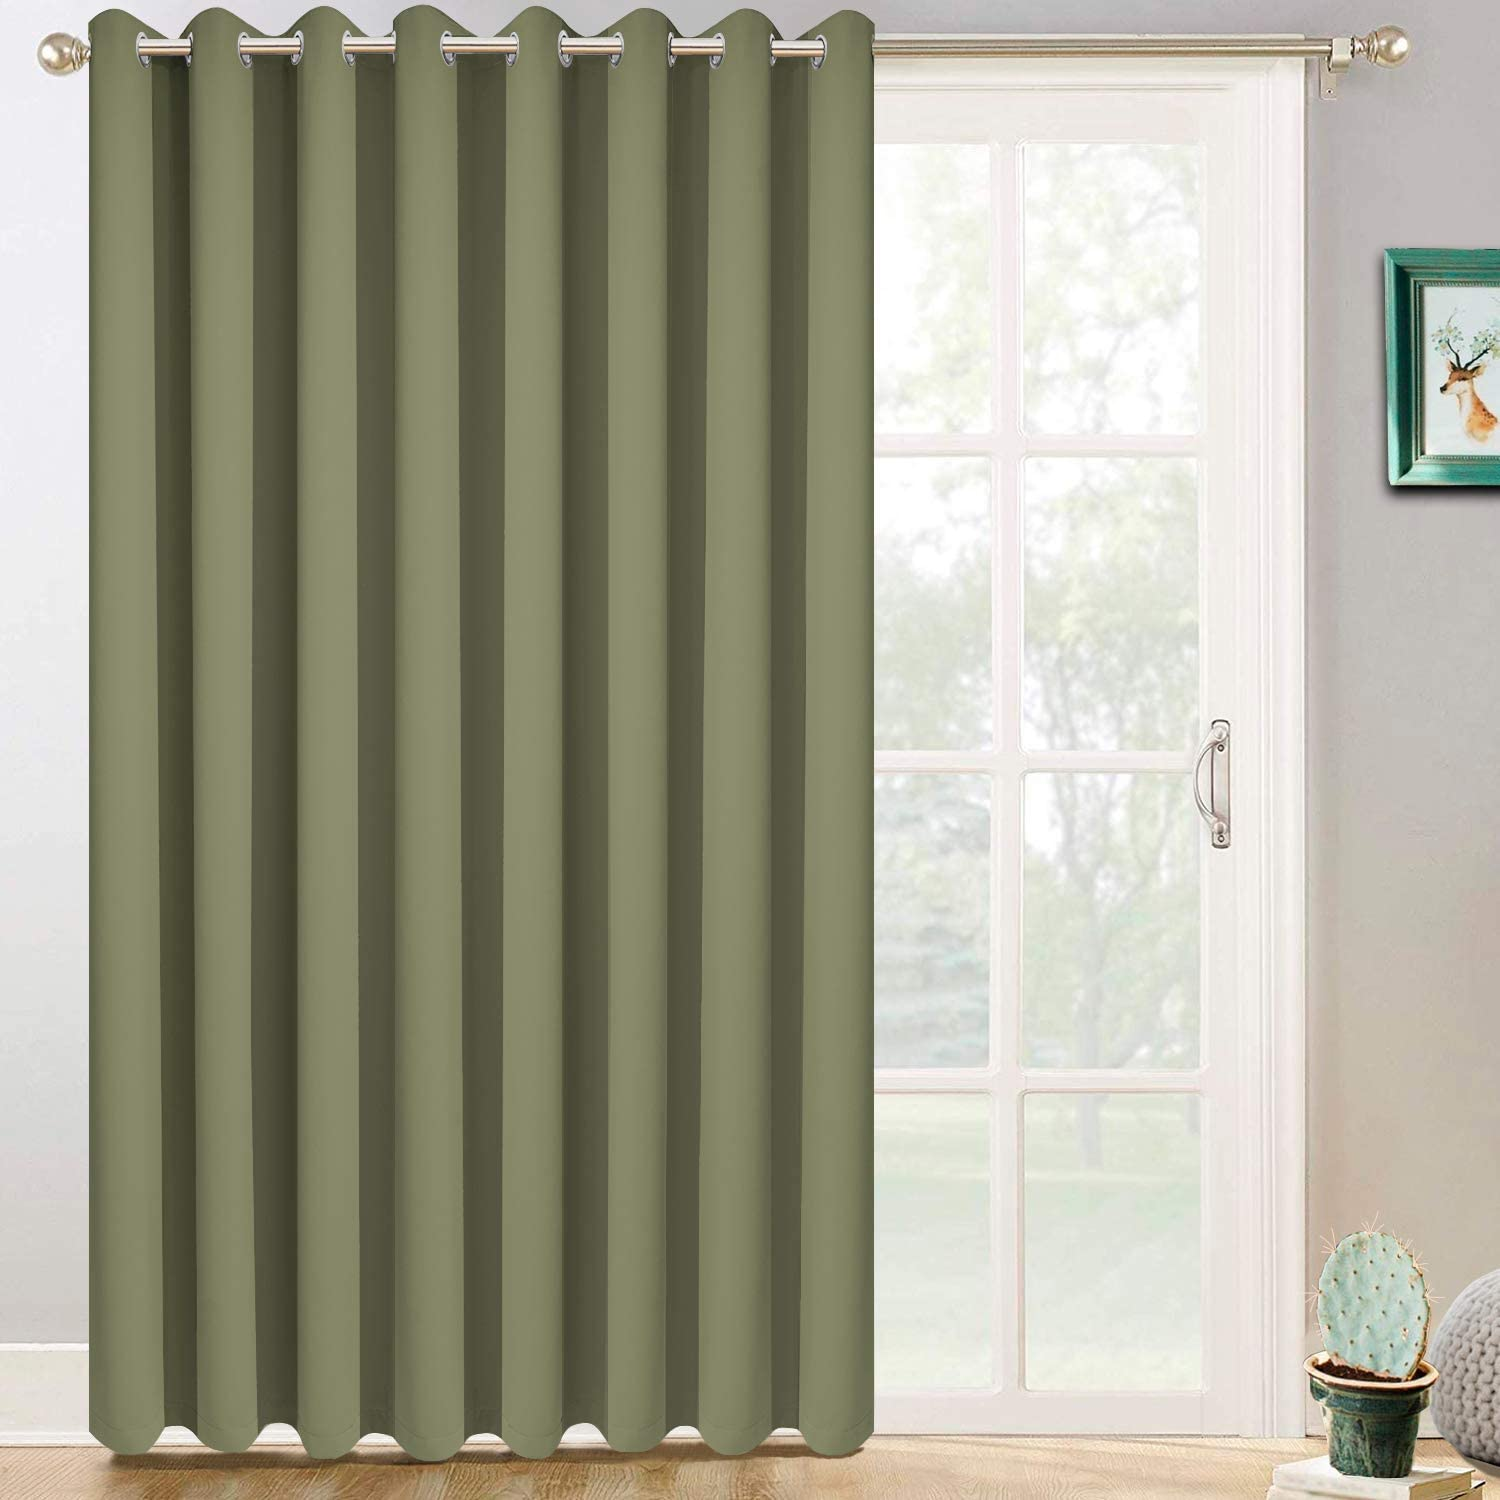 Yakamok Extra Wide Blackout Curtain Glass Sliding 毎日続々入荷 Grom Door 選択 for